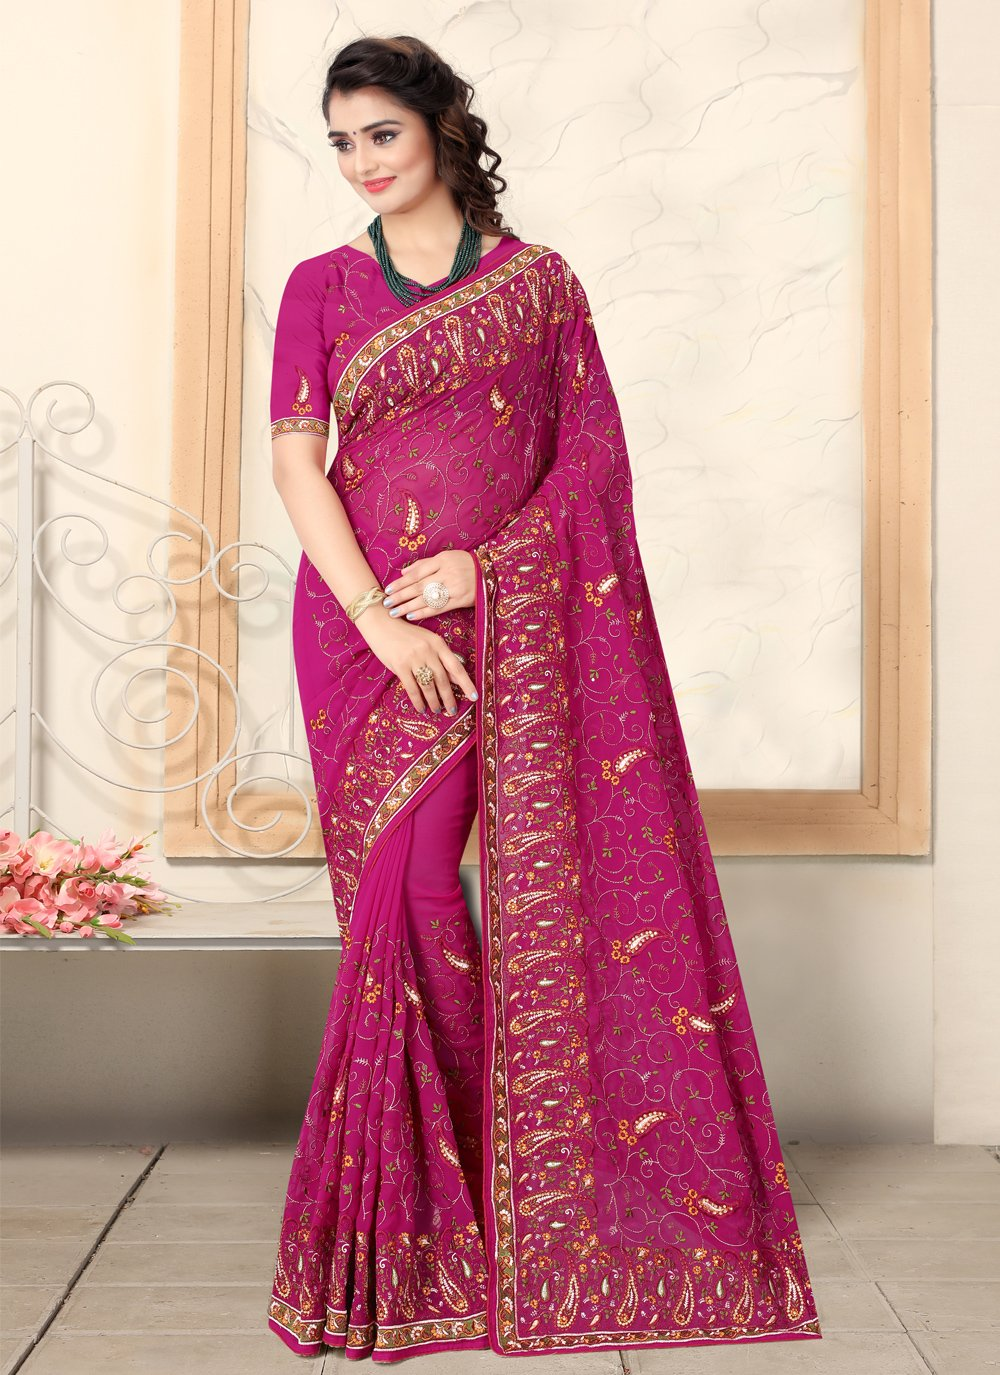 Georgette Embroidered Pink Bollywood Saree